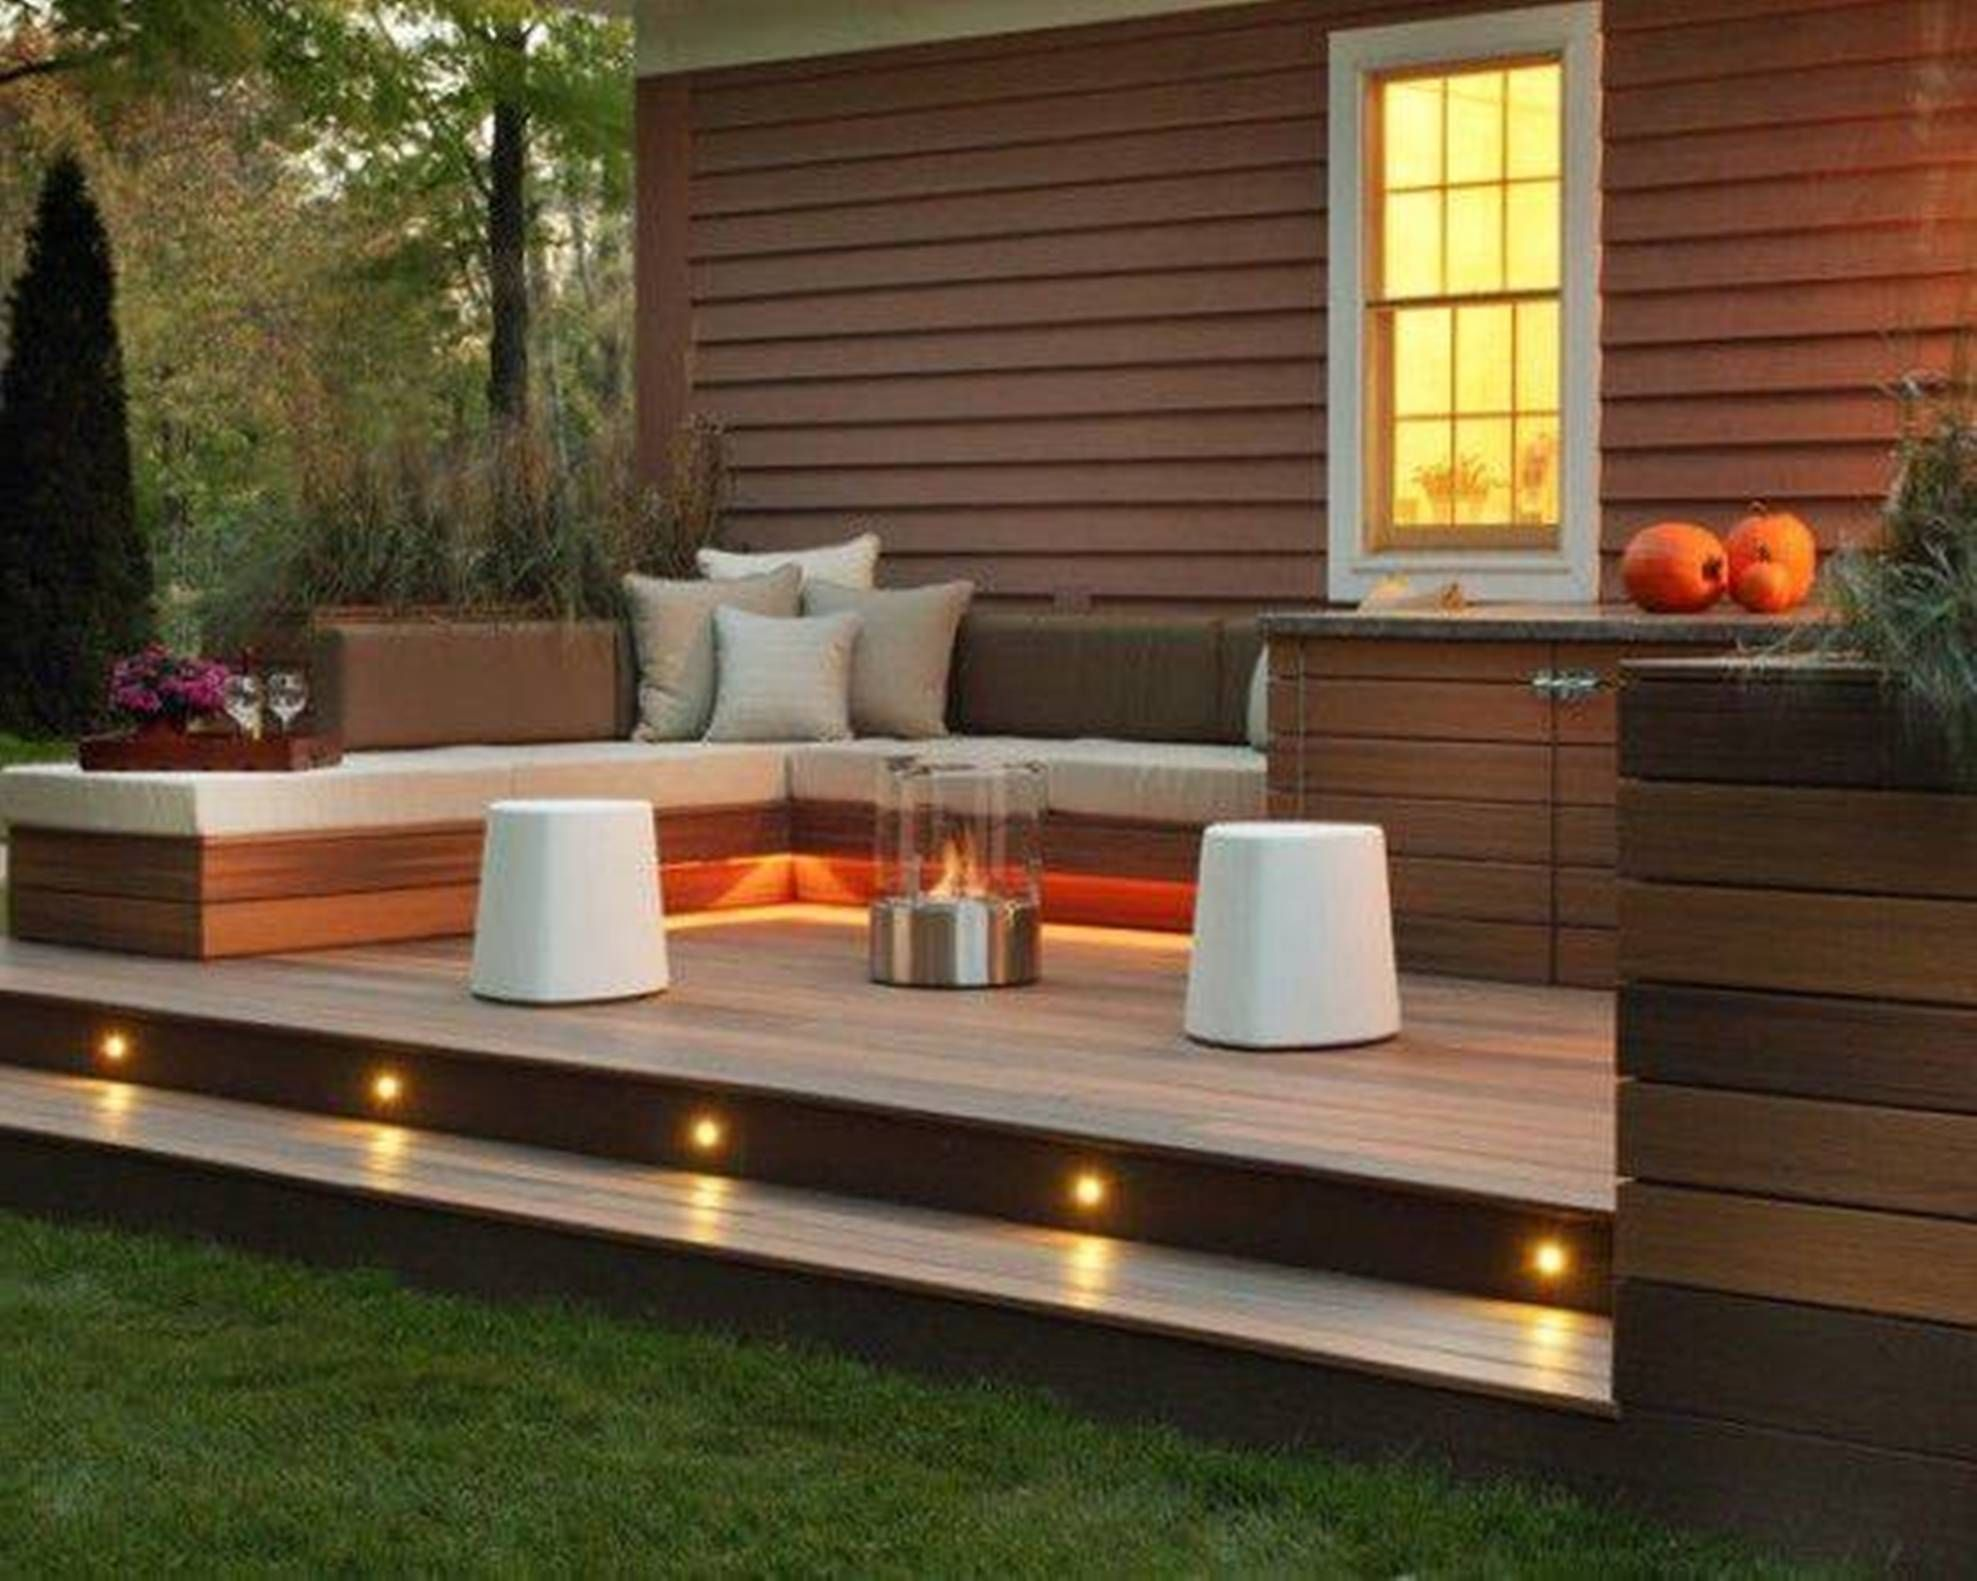 Patio Deck Design Ideas backyard deck designs pictures deck ideas be more when deck building simple but functional designs can Landscaping And Outdoor Building Great Small Backyard Deck Designs Small Backyard Deck Designs With